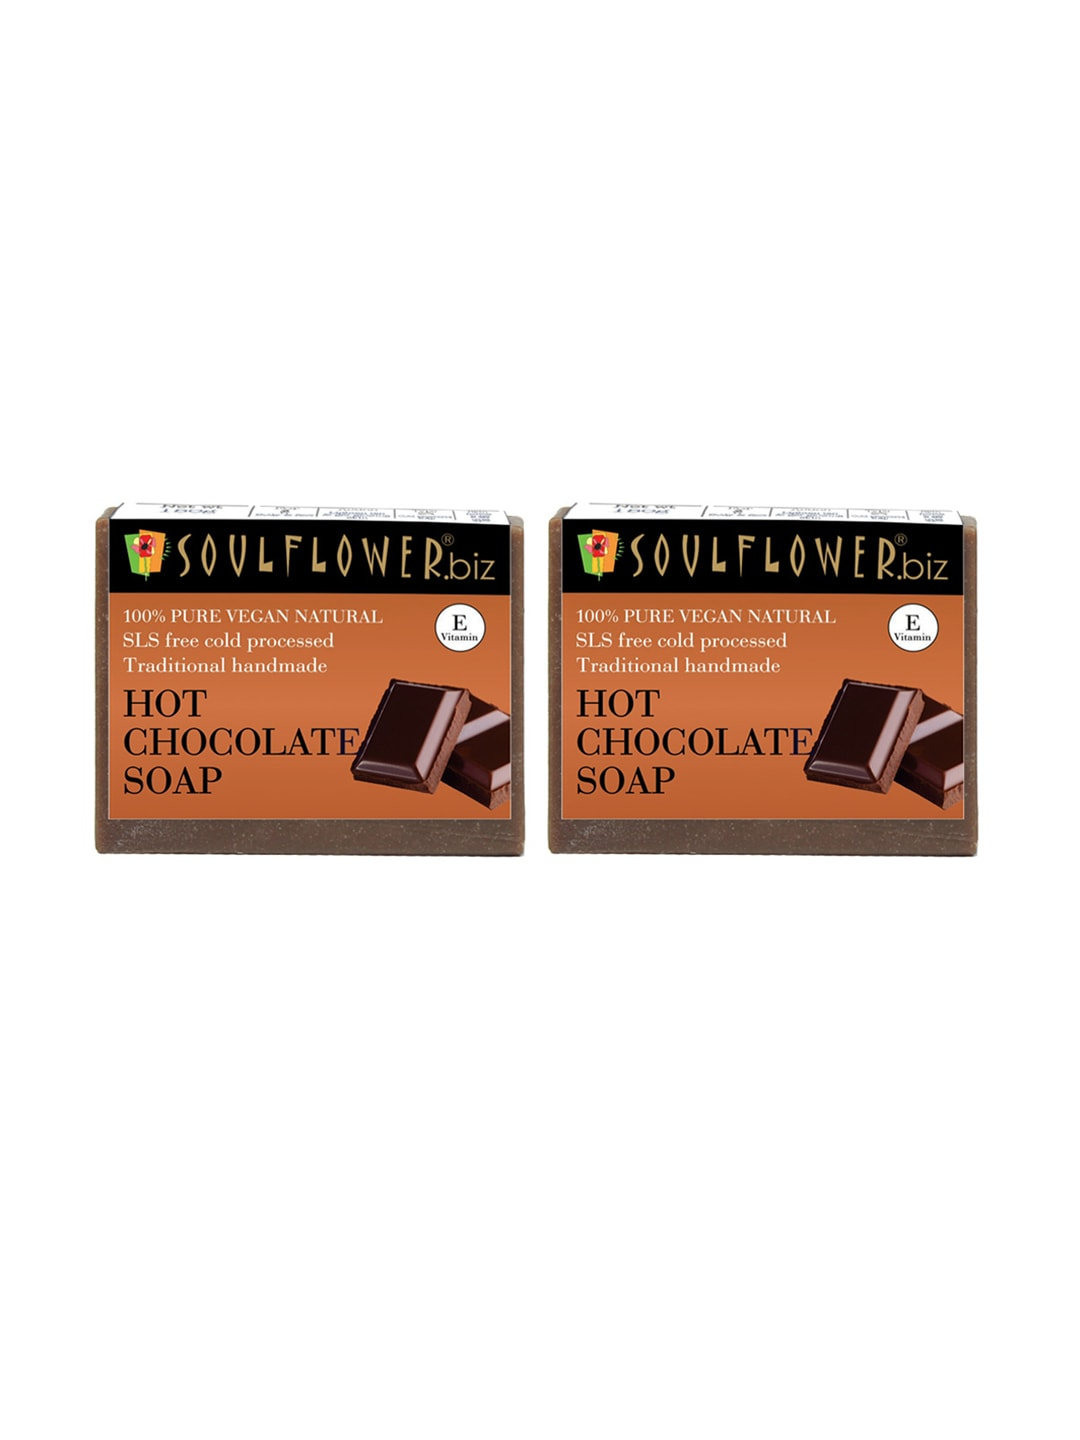 Soulflower Unisex Pack of 2 Hot Chocolate Soaps image